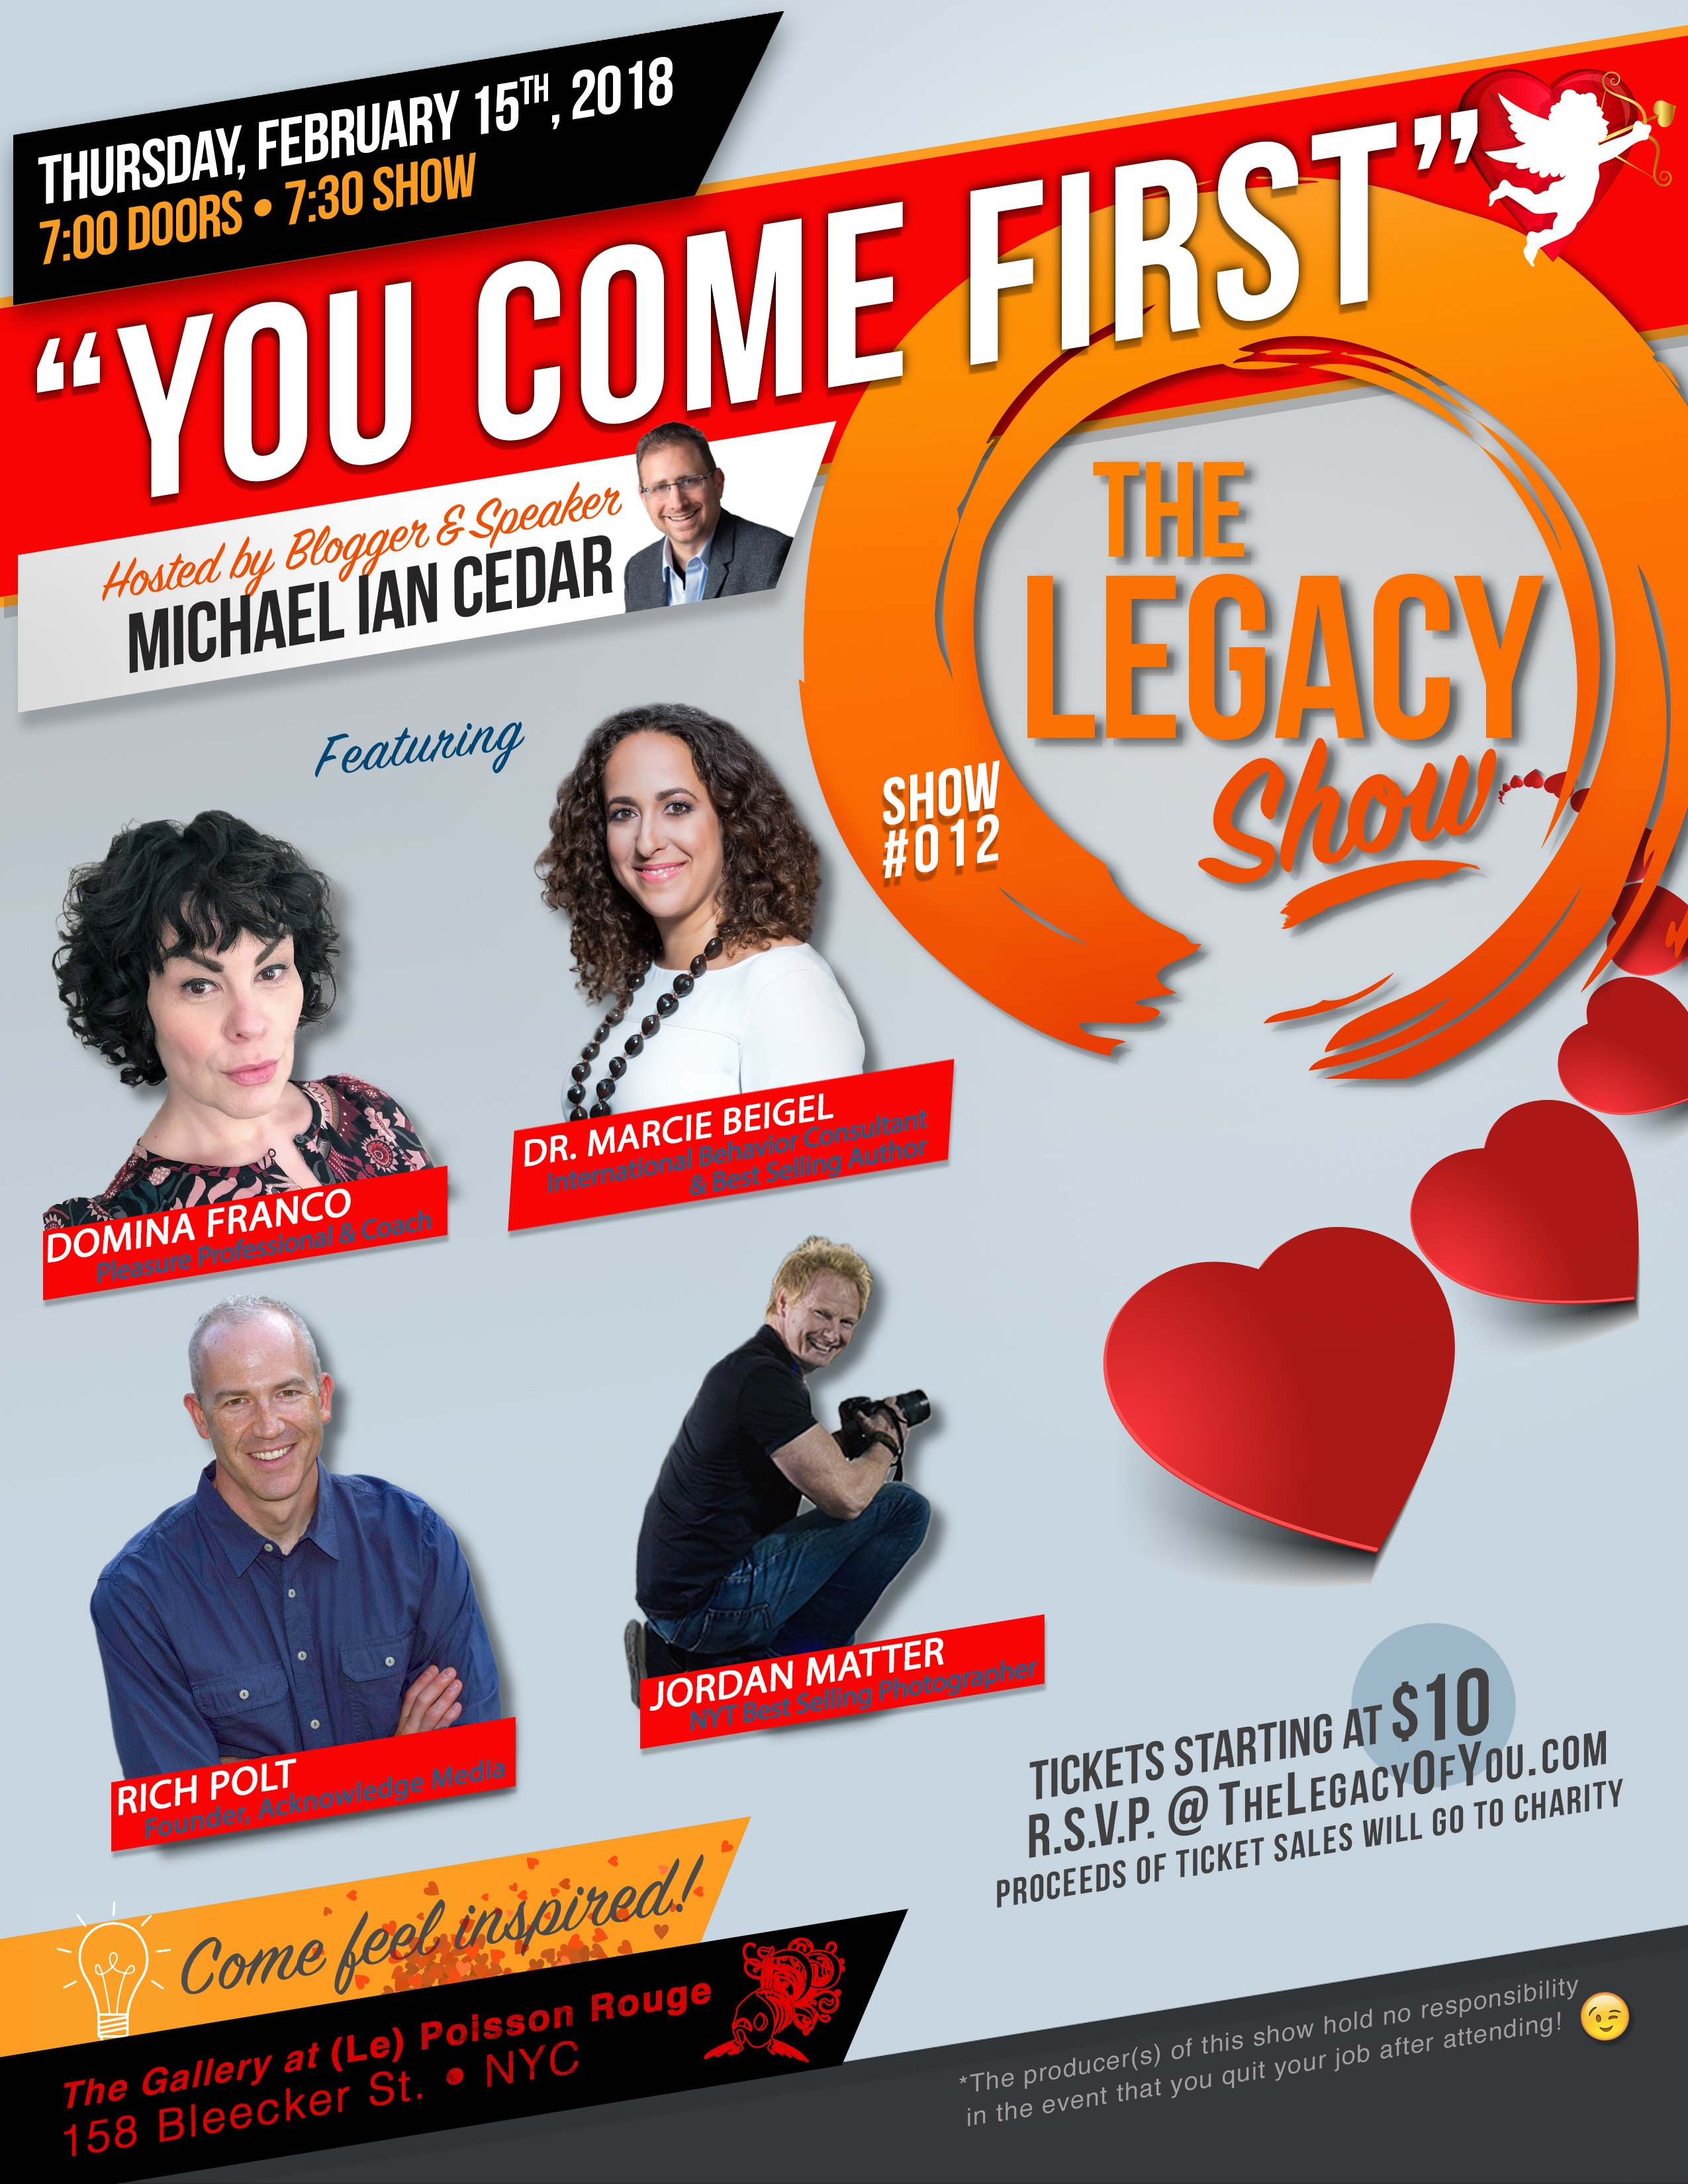 The Legacy Show - You Come First